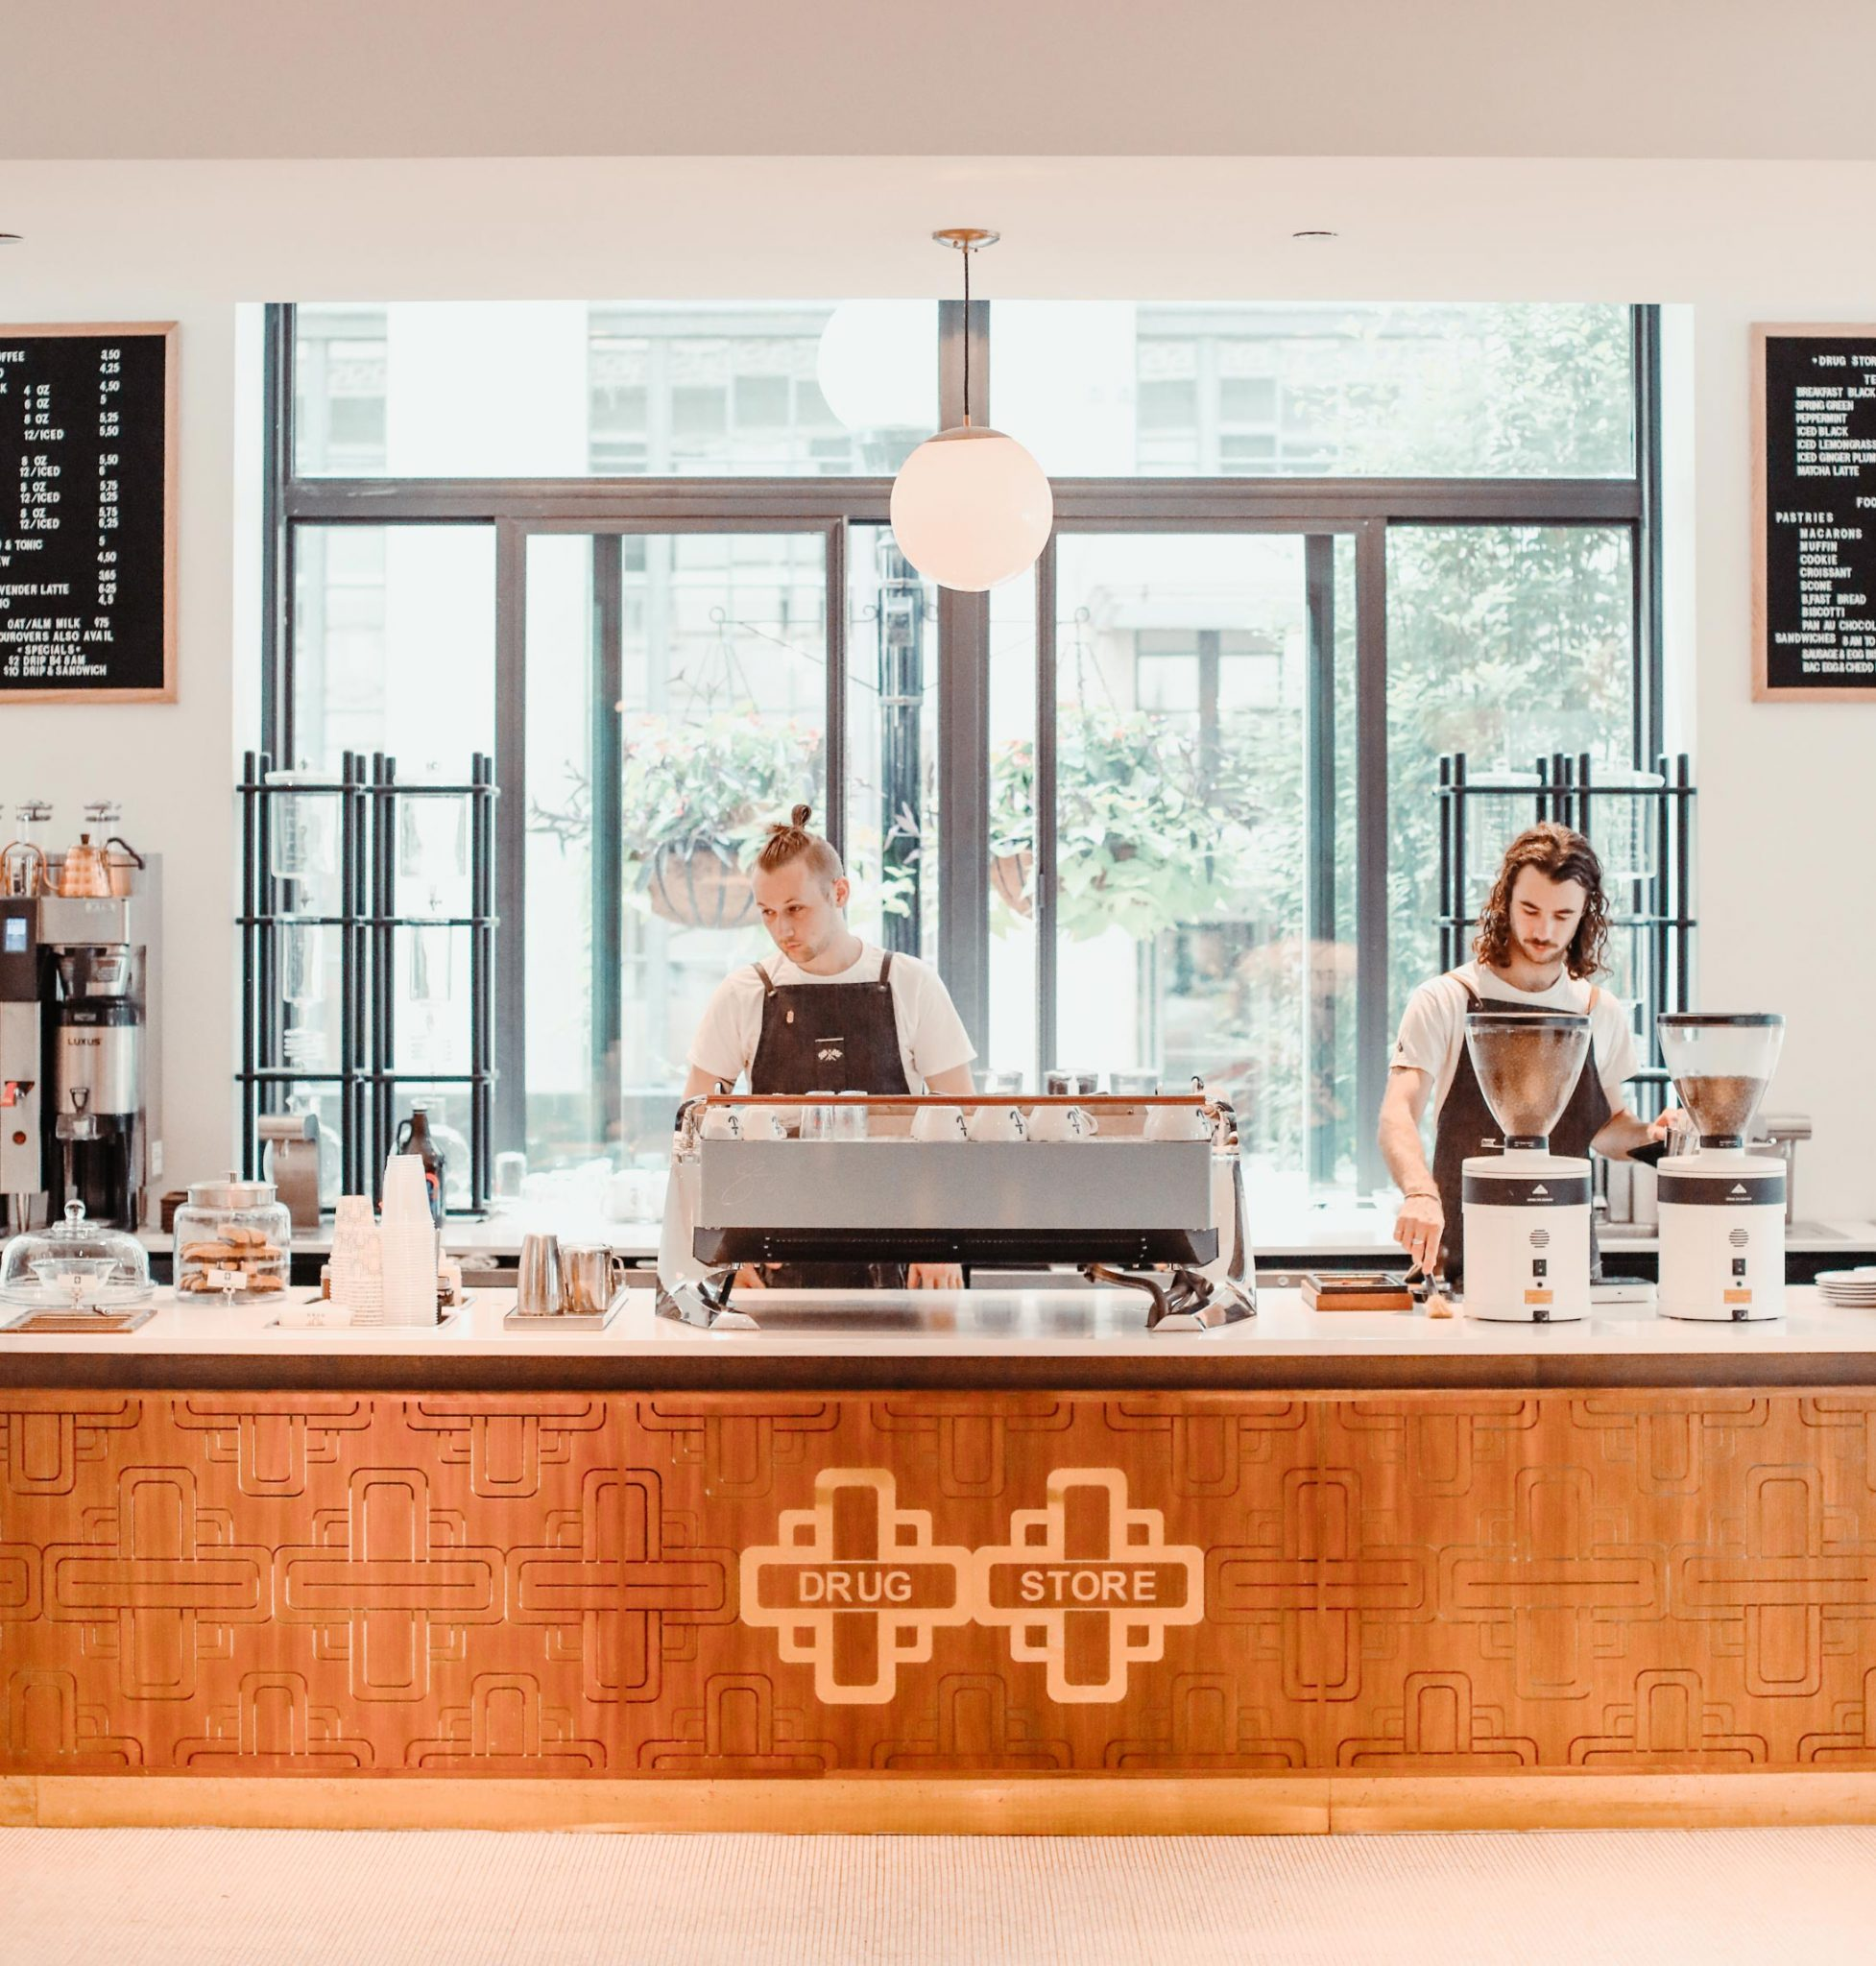 Barista's at Drug Store Coffee